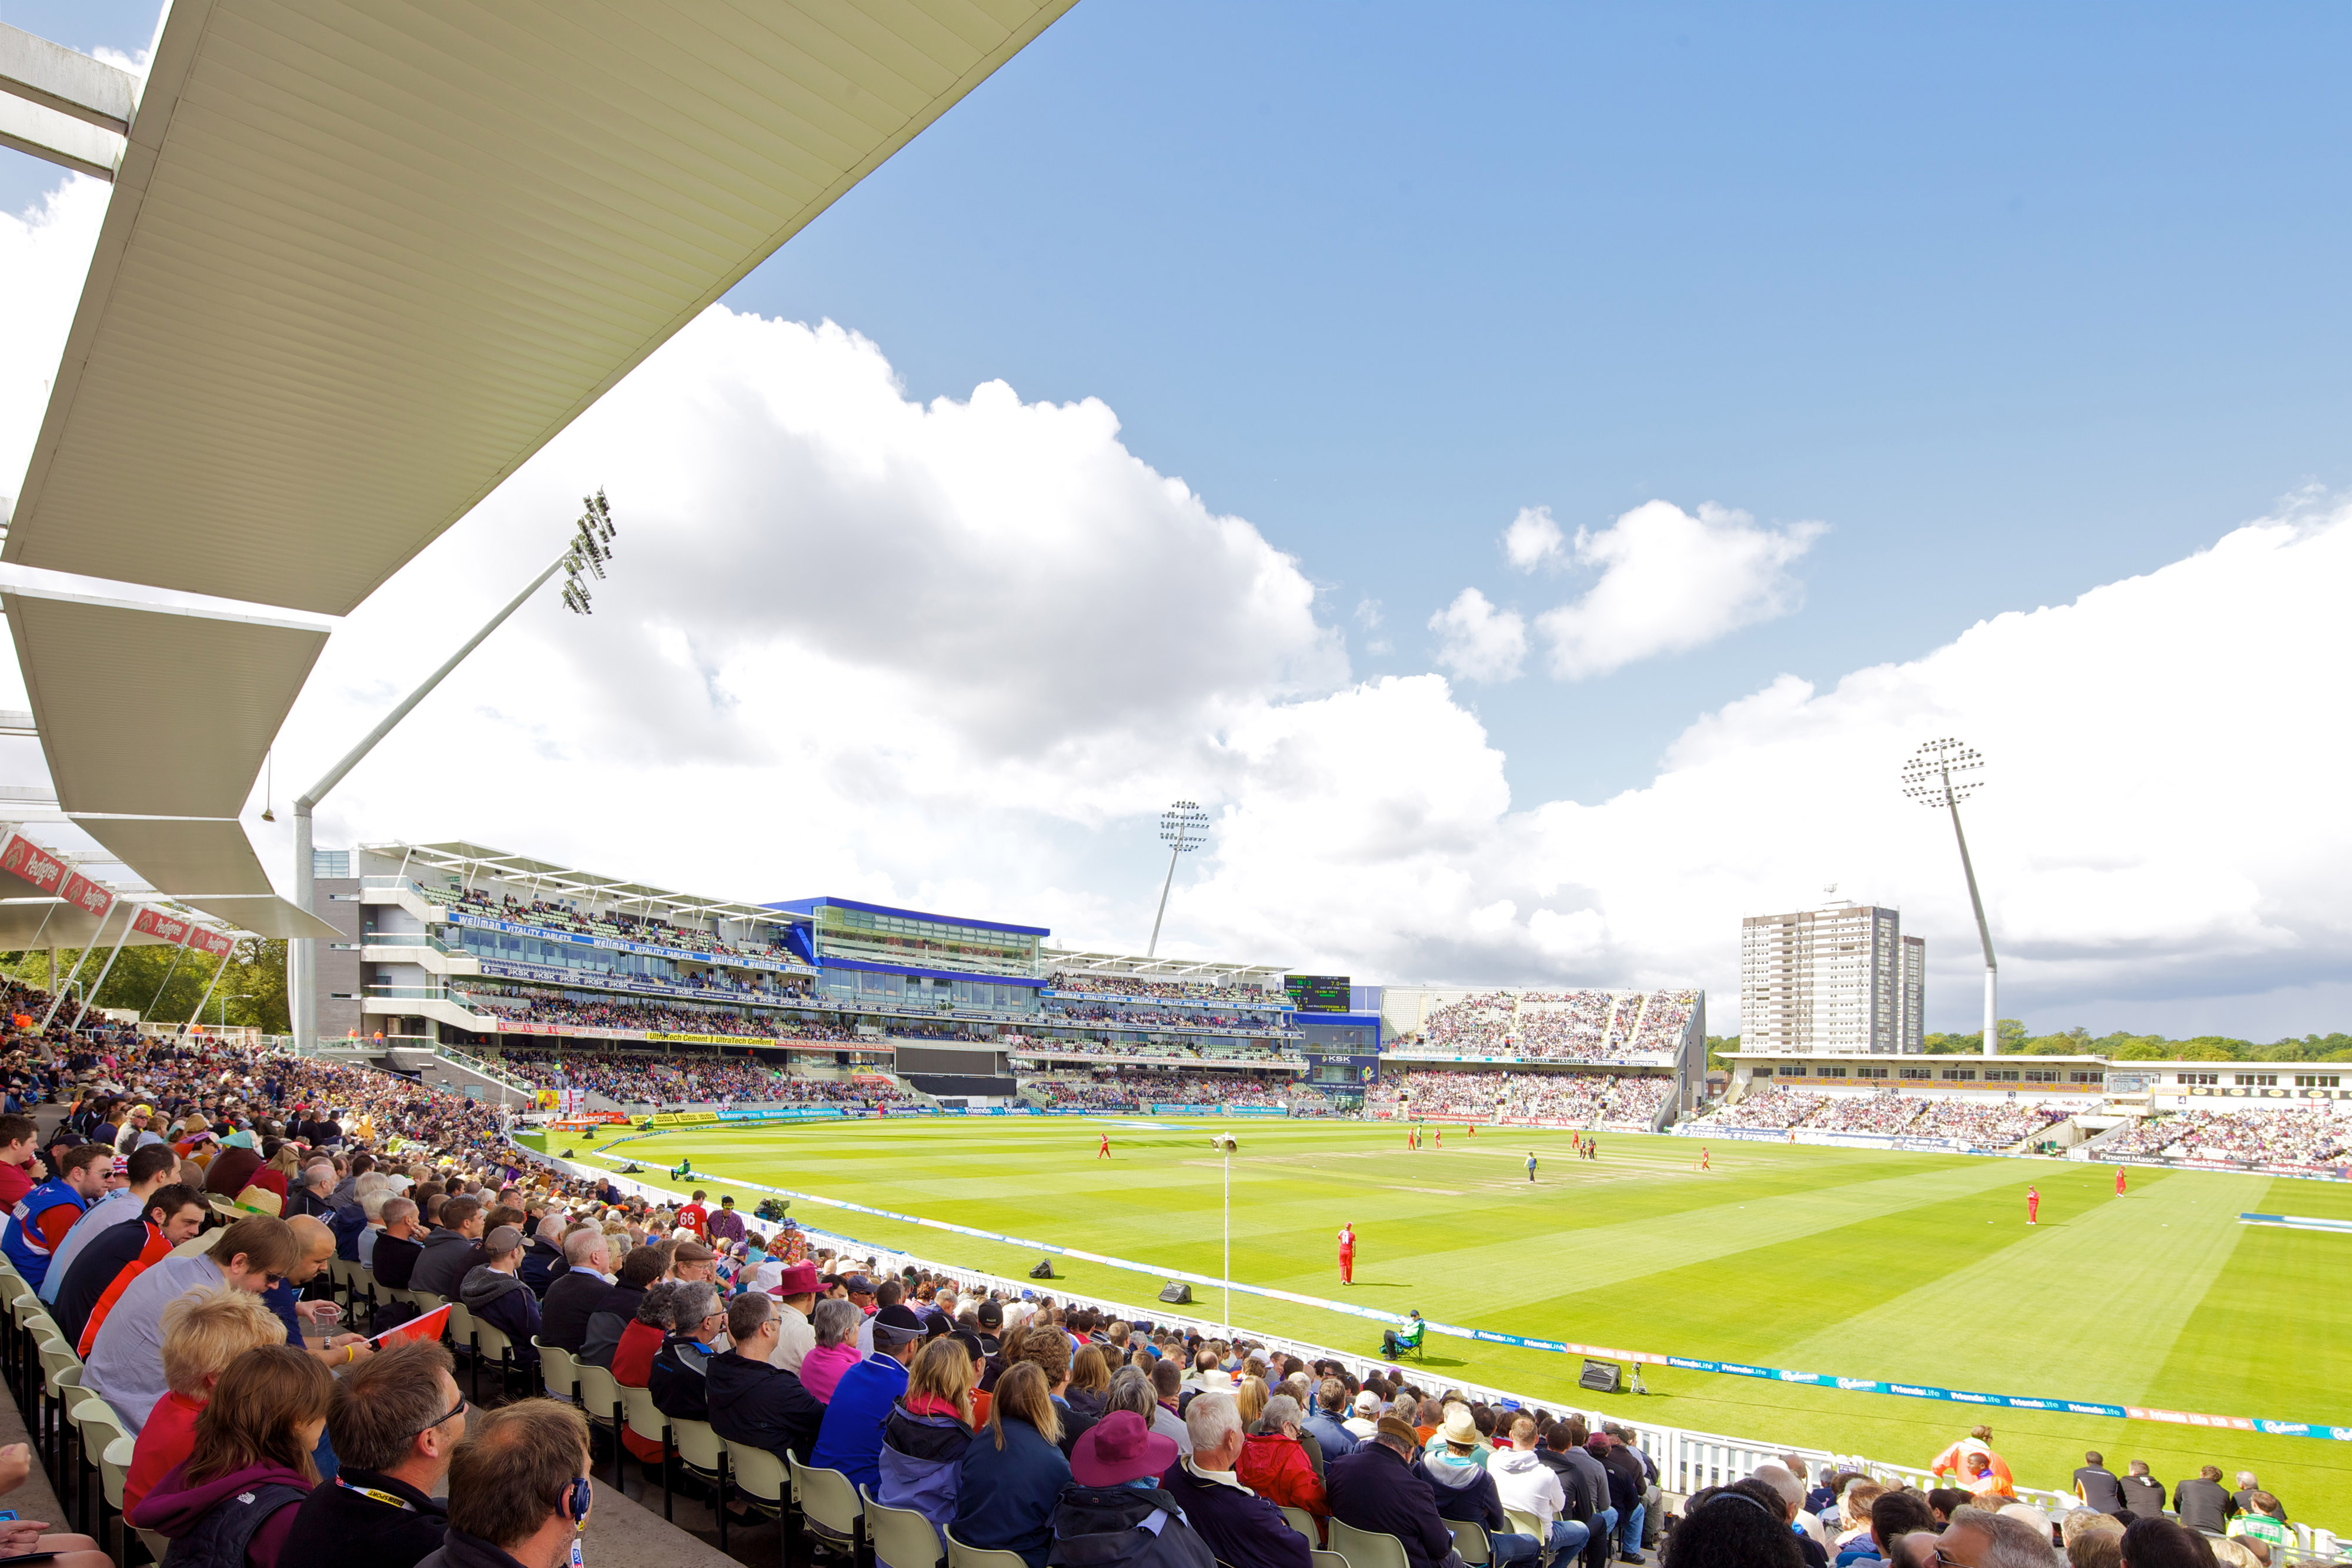 Edgbaston Stadium 2